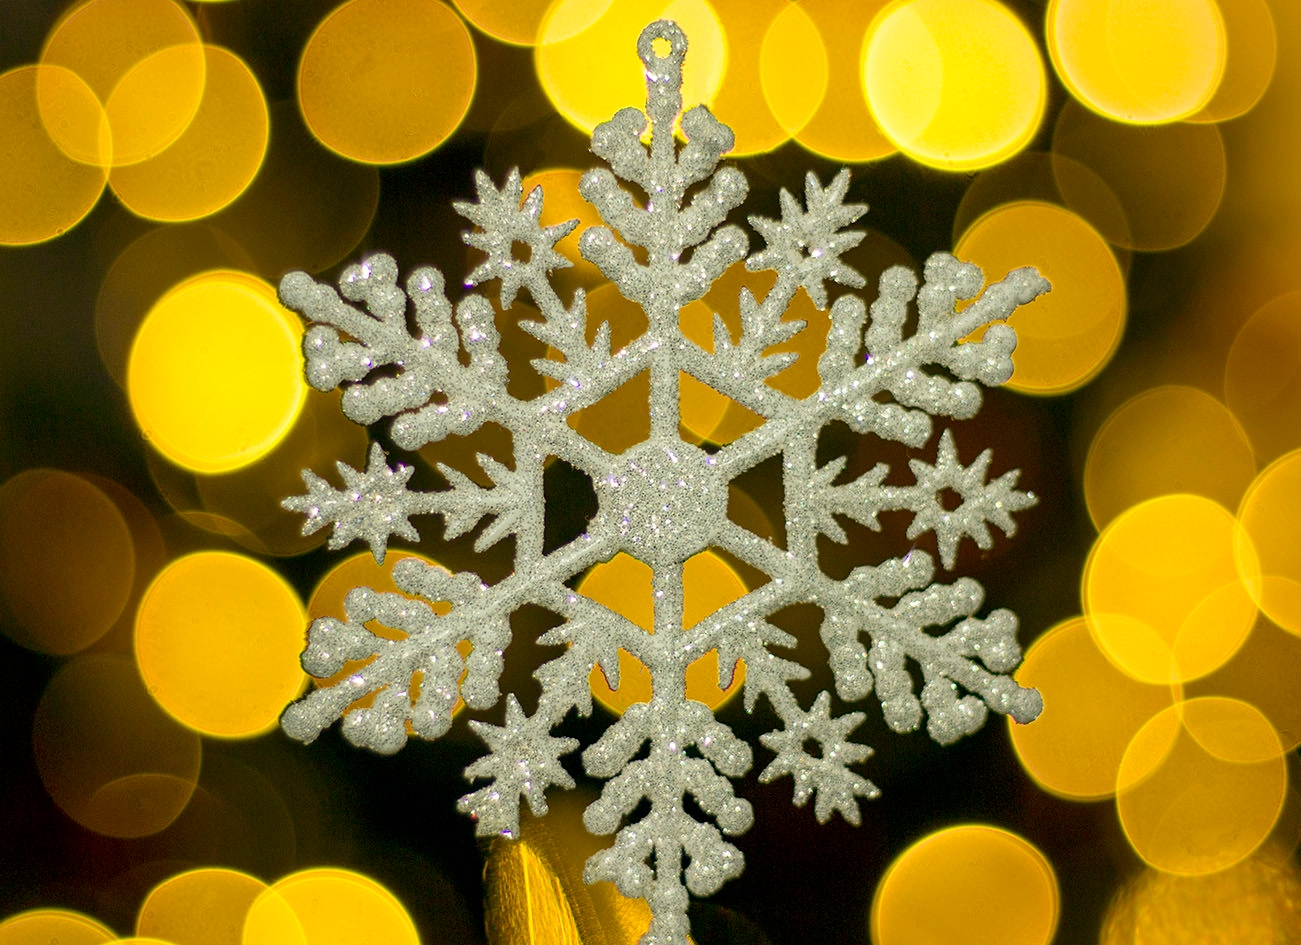 Yellow Snowflakes Bokeh Background